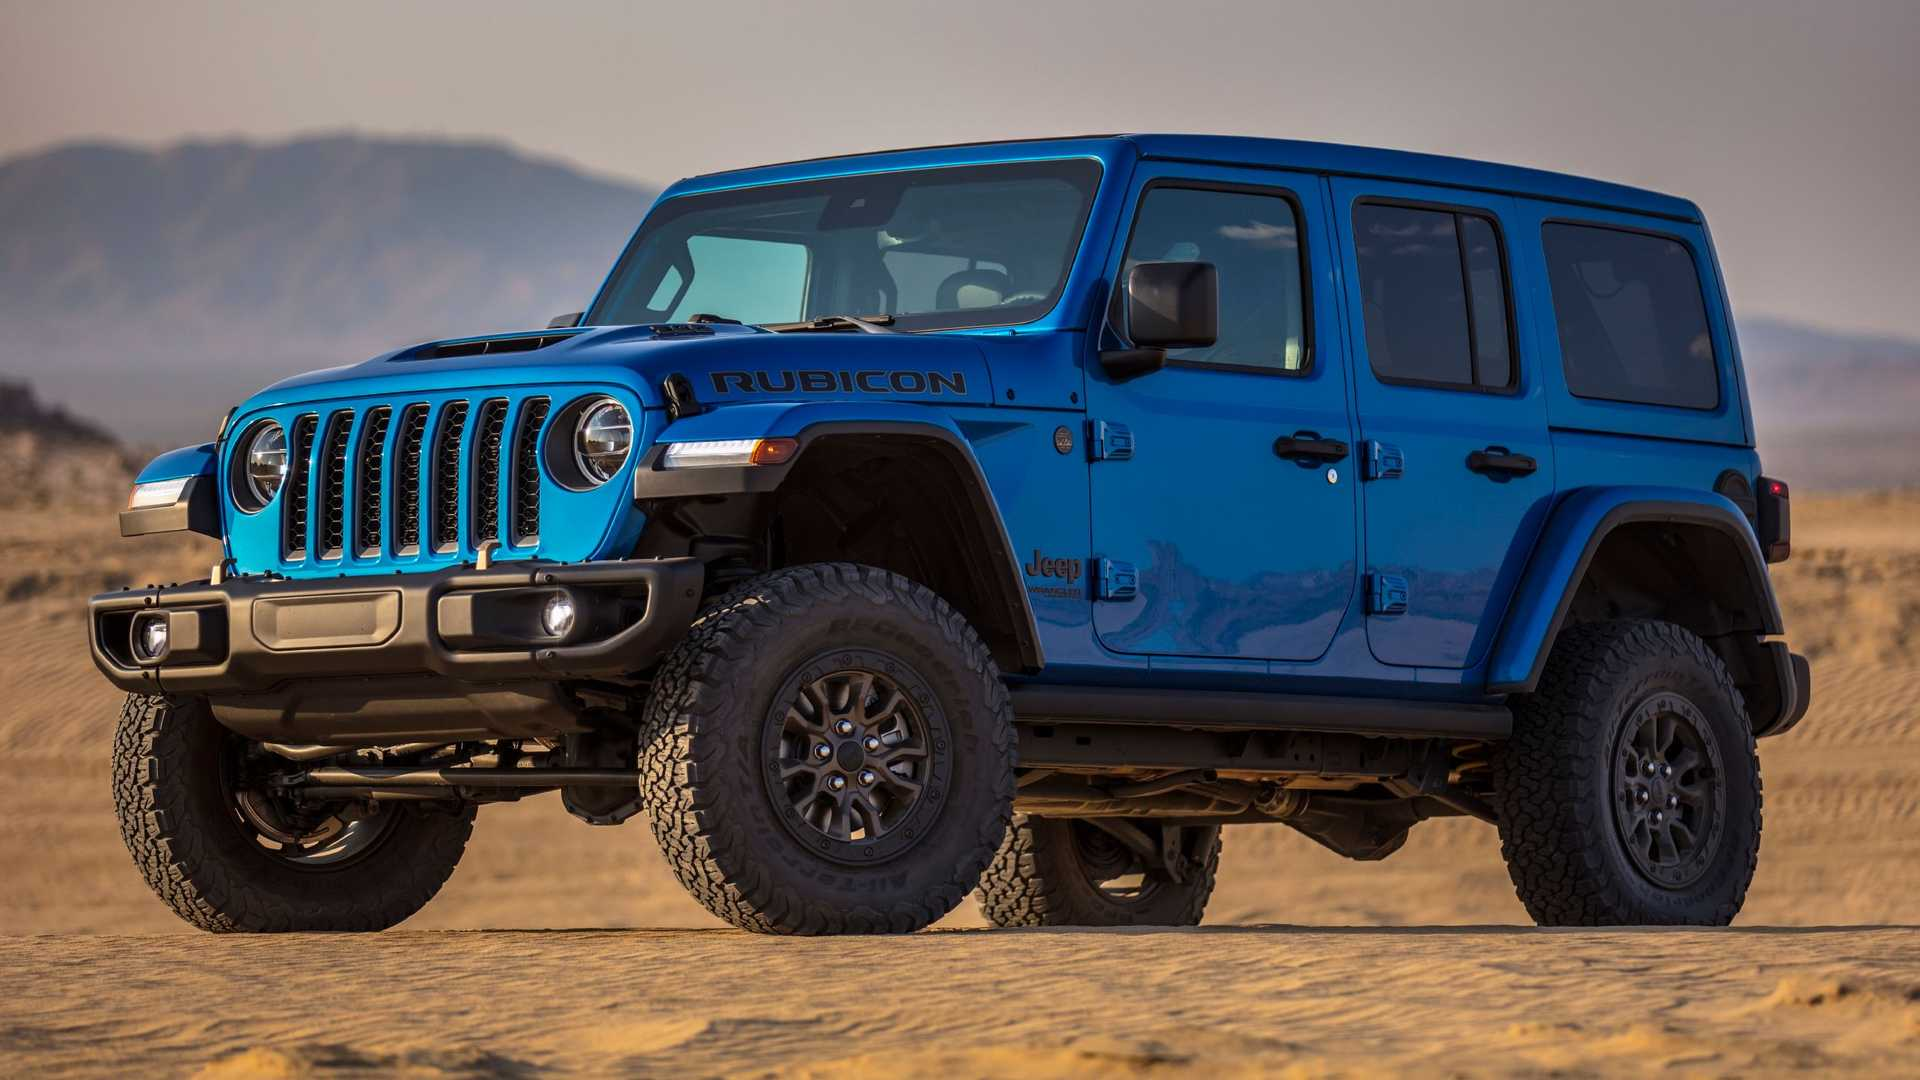 2021-jeep-wrangler-rubicon-392-front-view-5